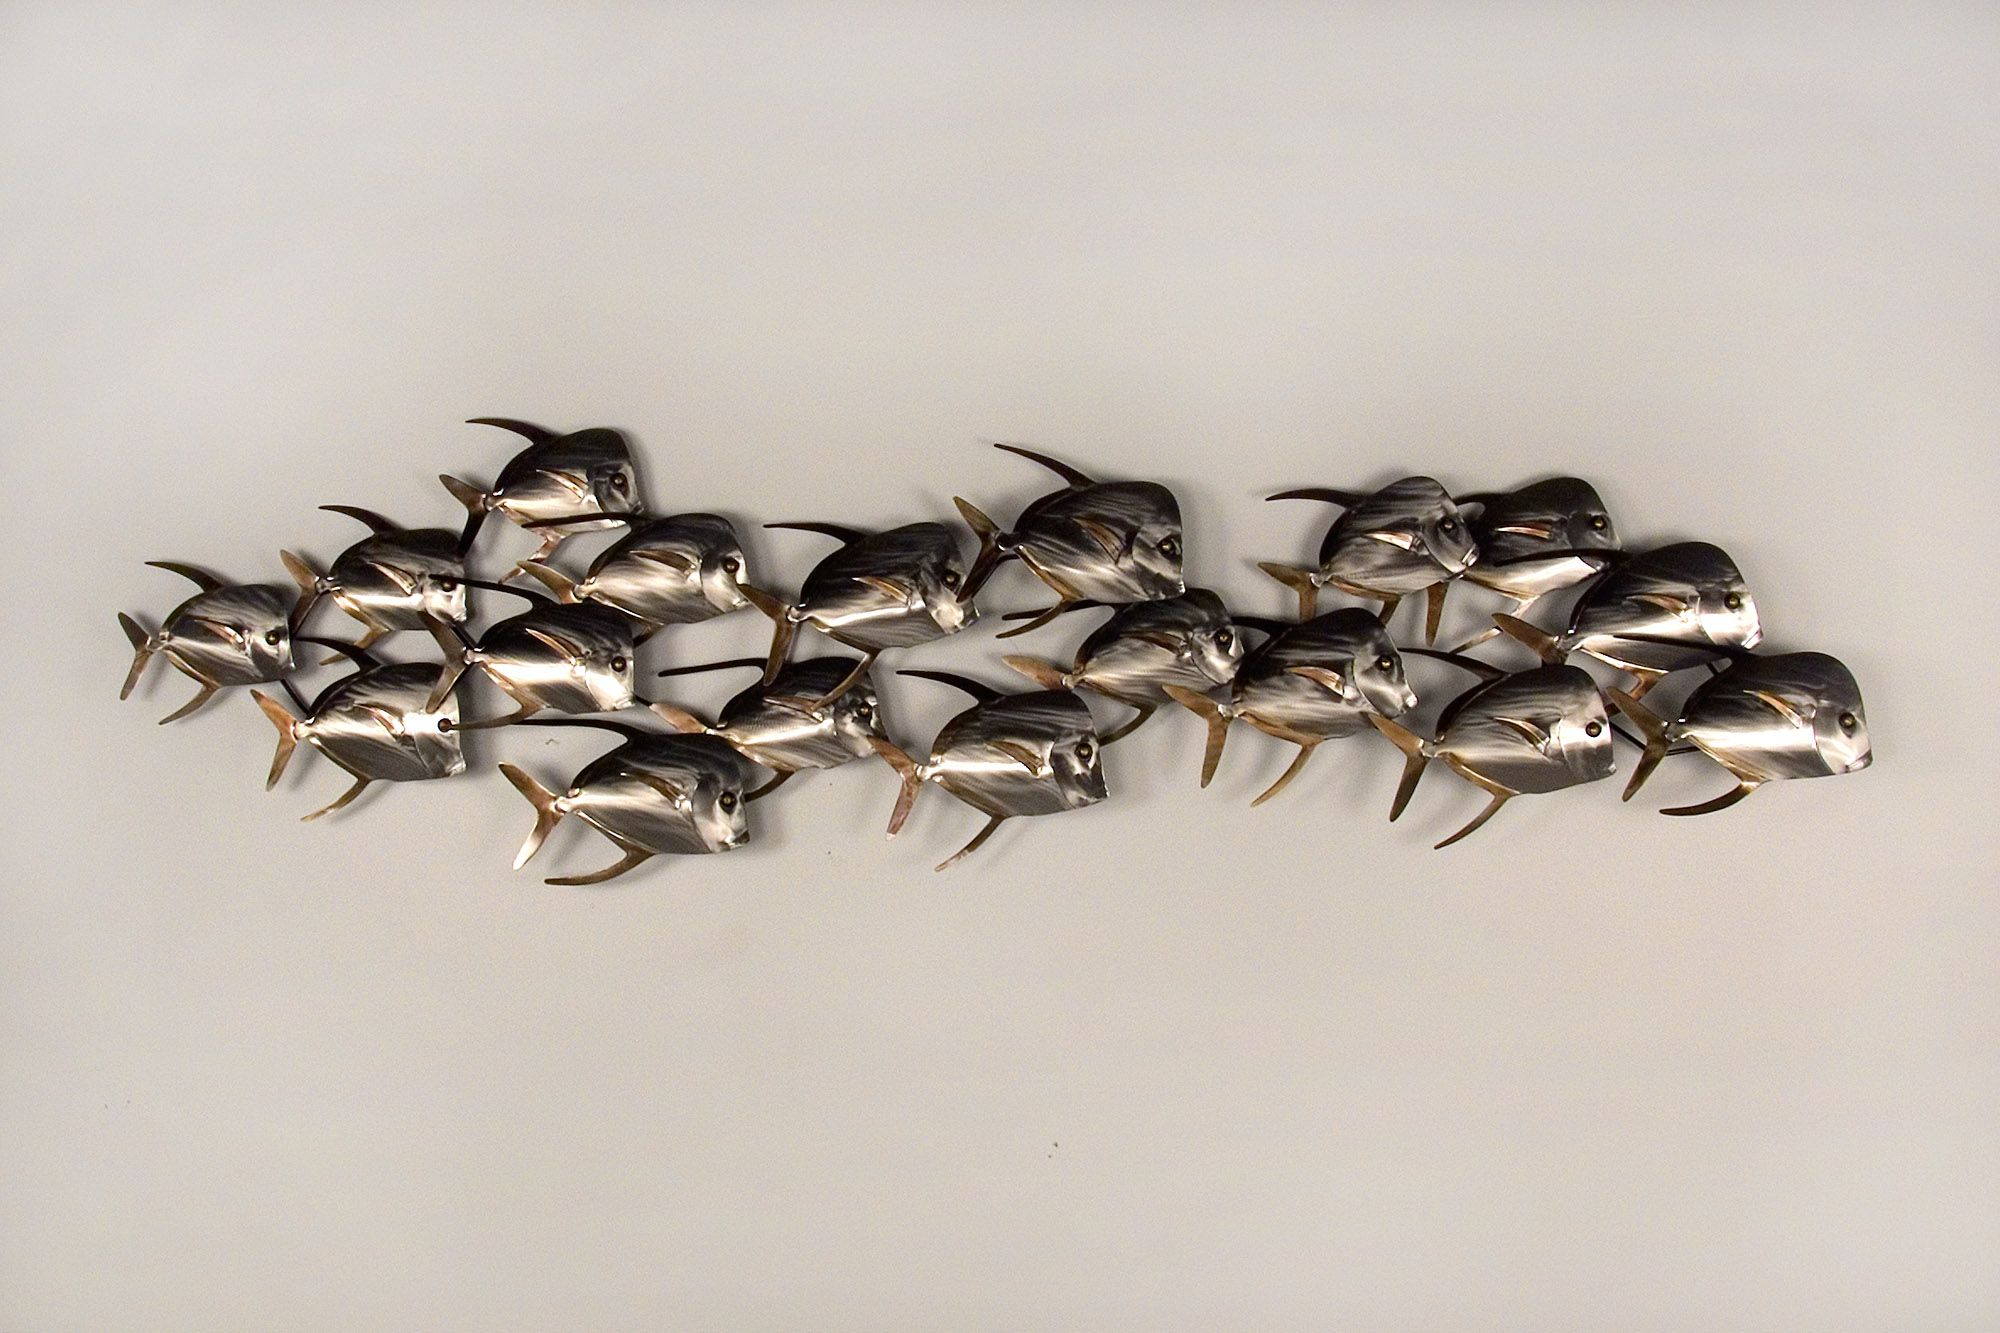 stainless steel metal fish wall art from